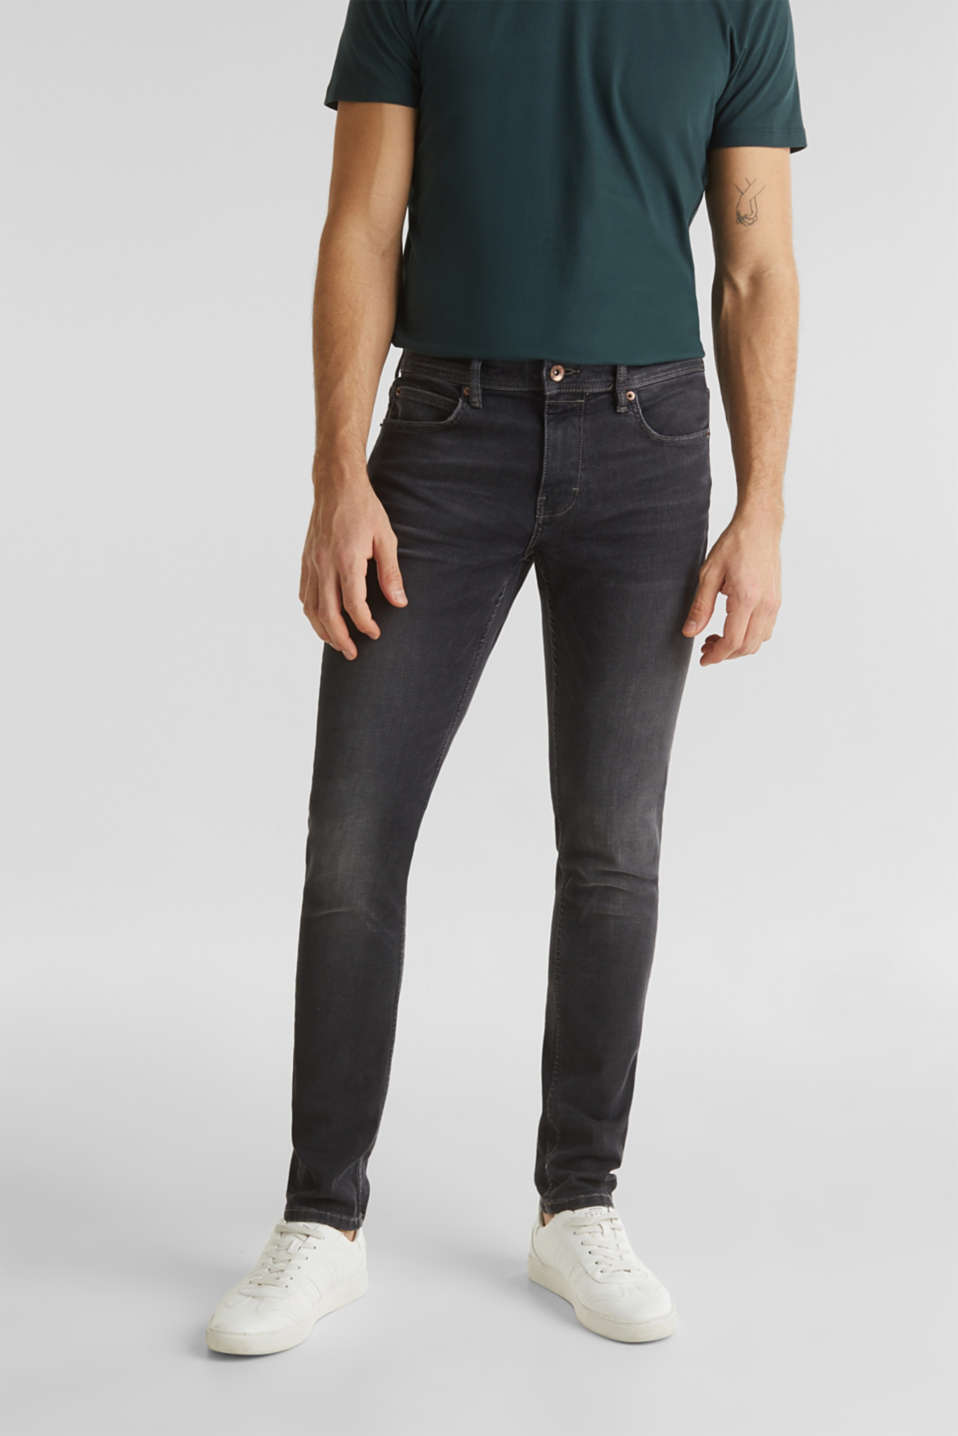 Esprit - Dynamic denim with super stretch for comfort